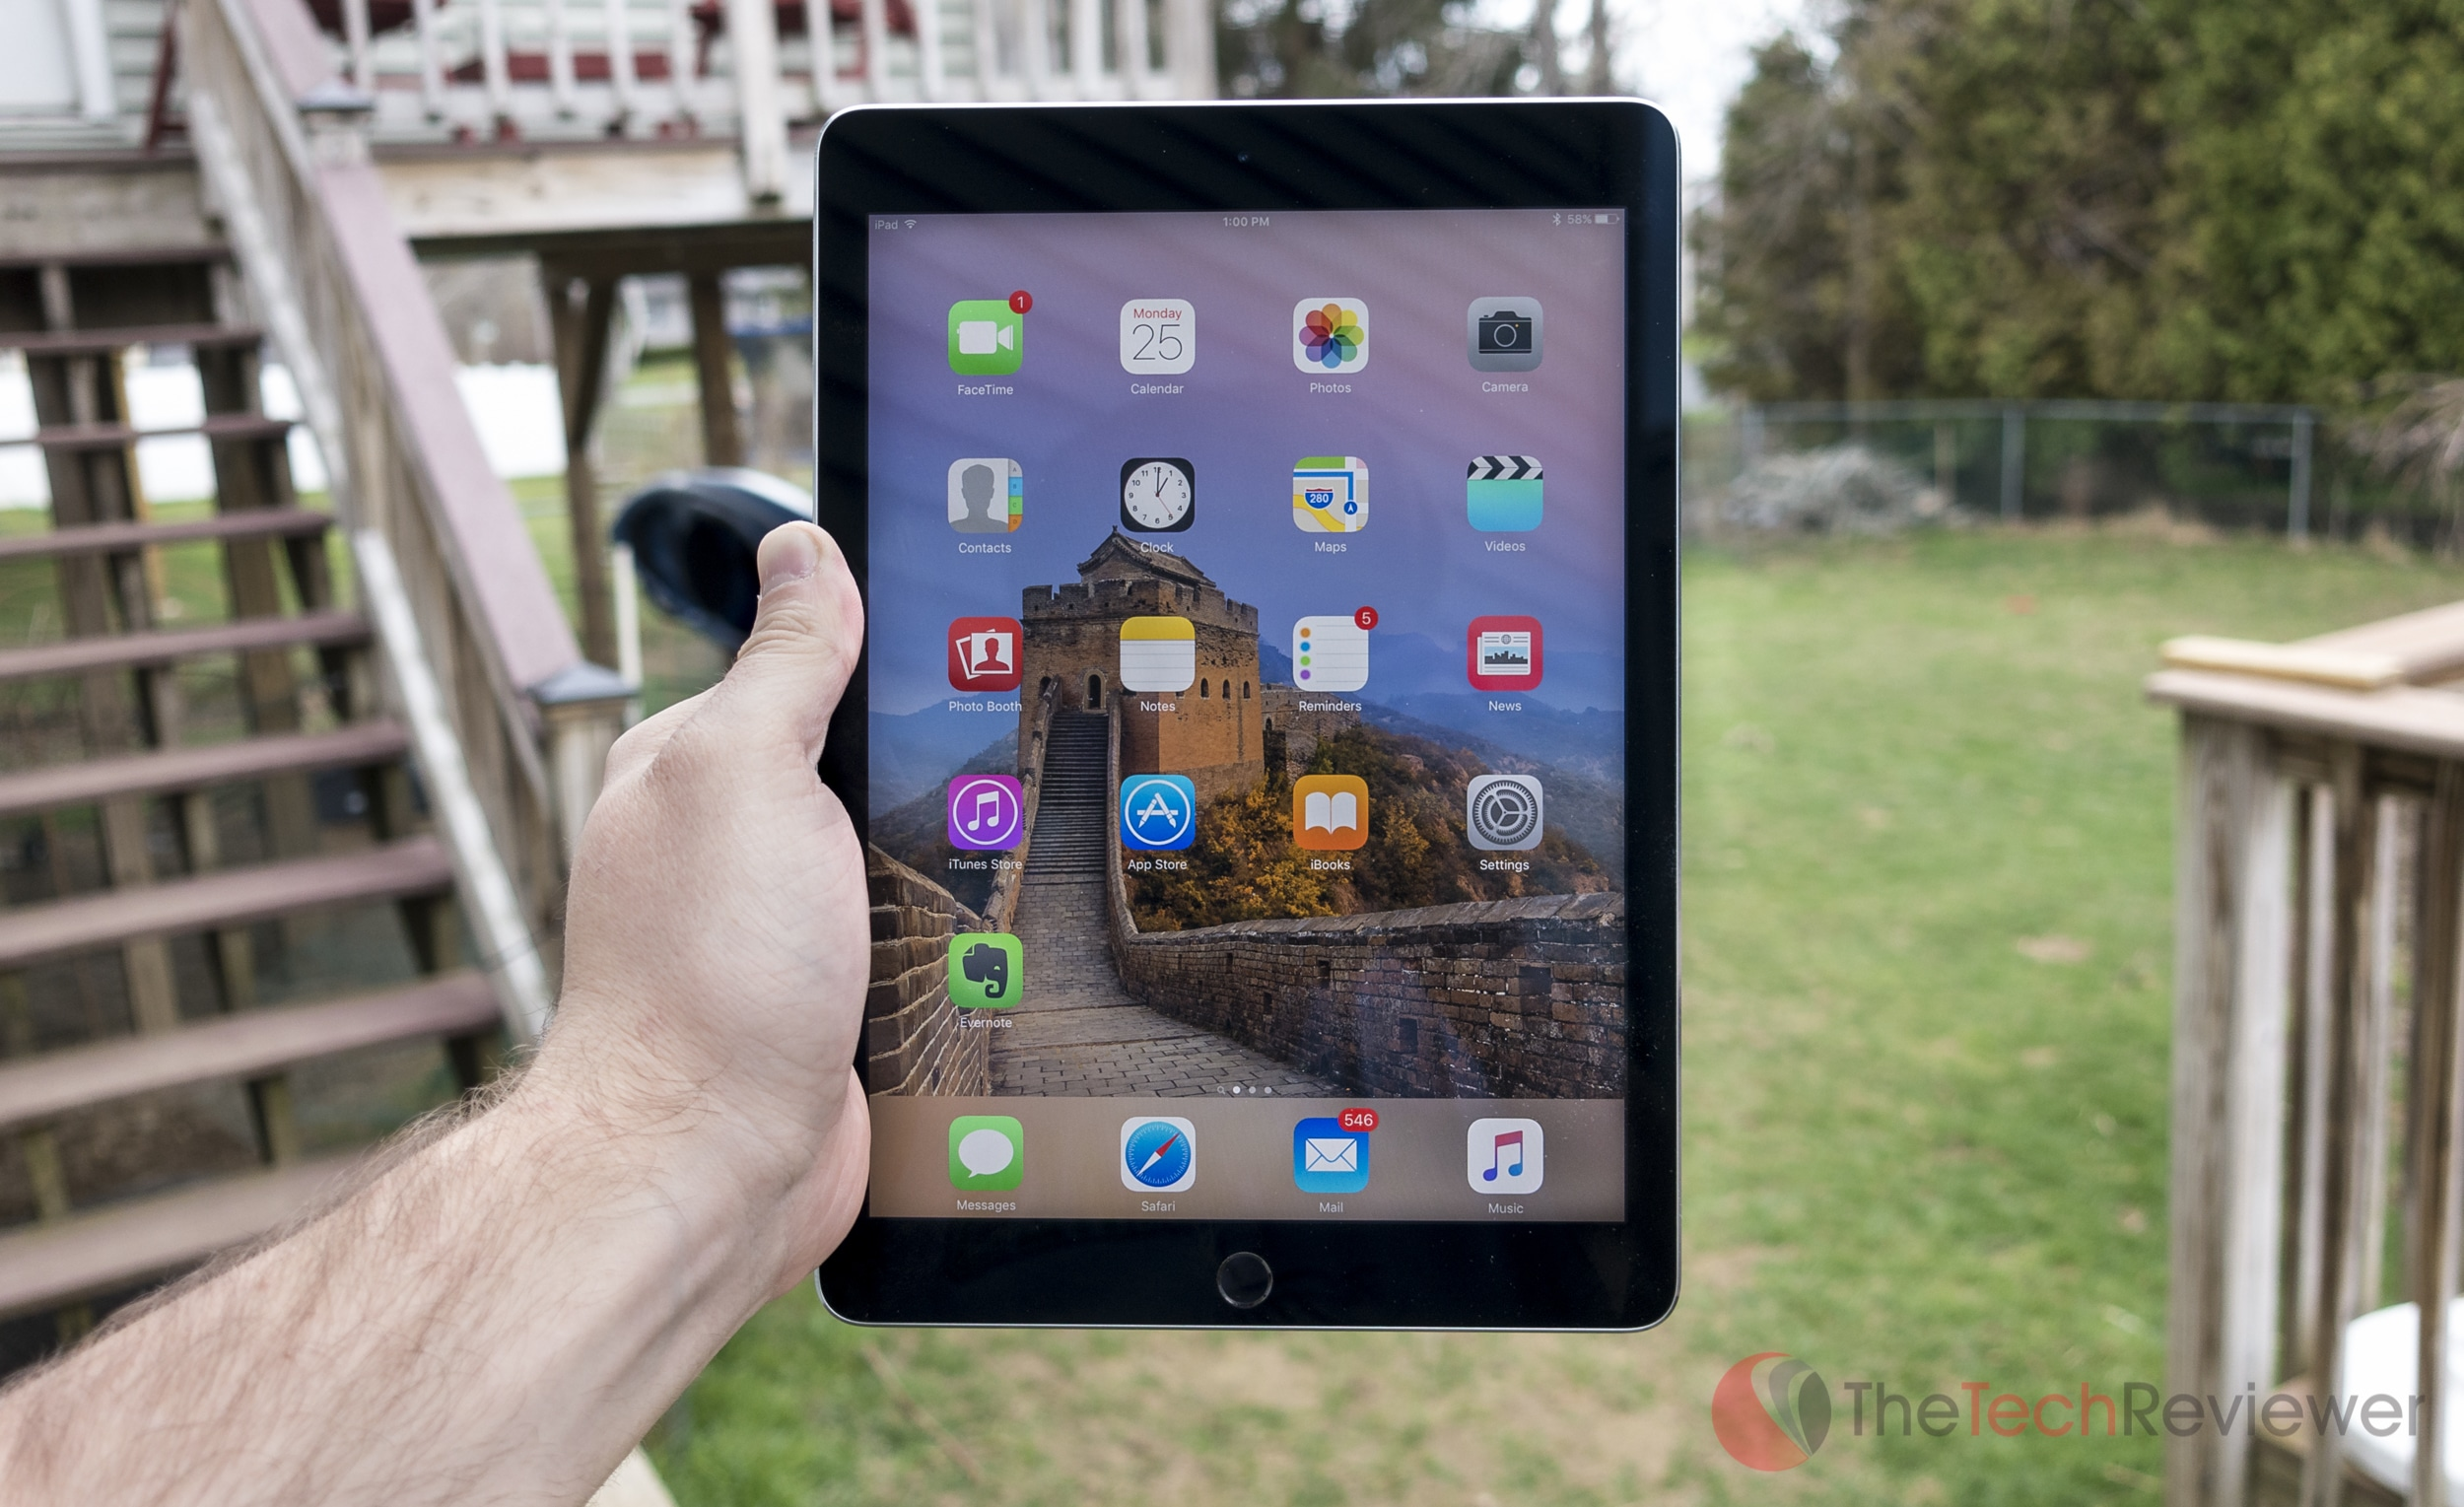 Apple%20iPad%20Pro%209.7-inch-1